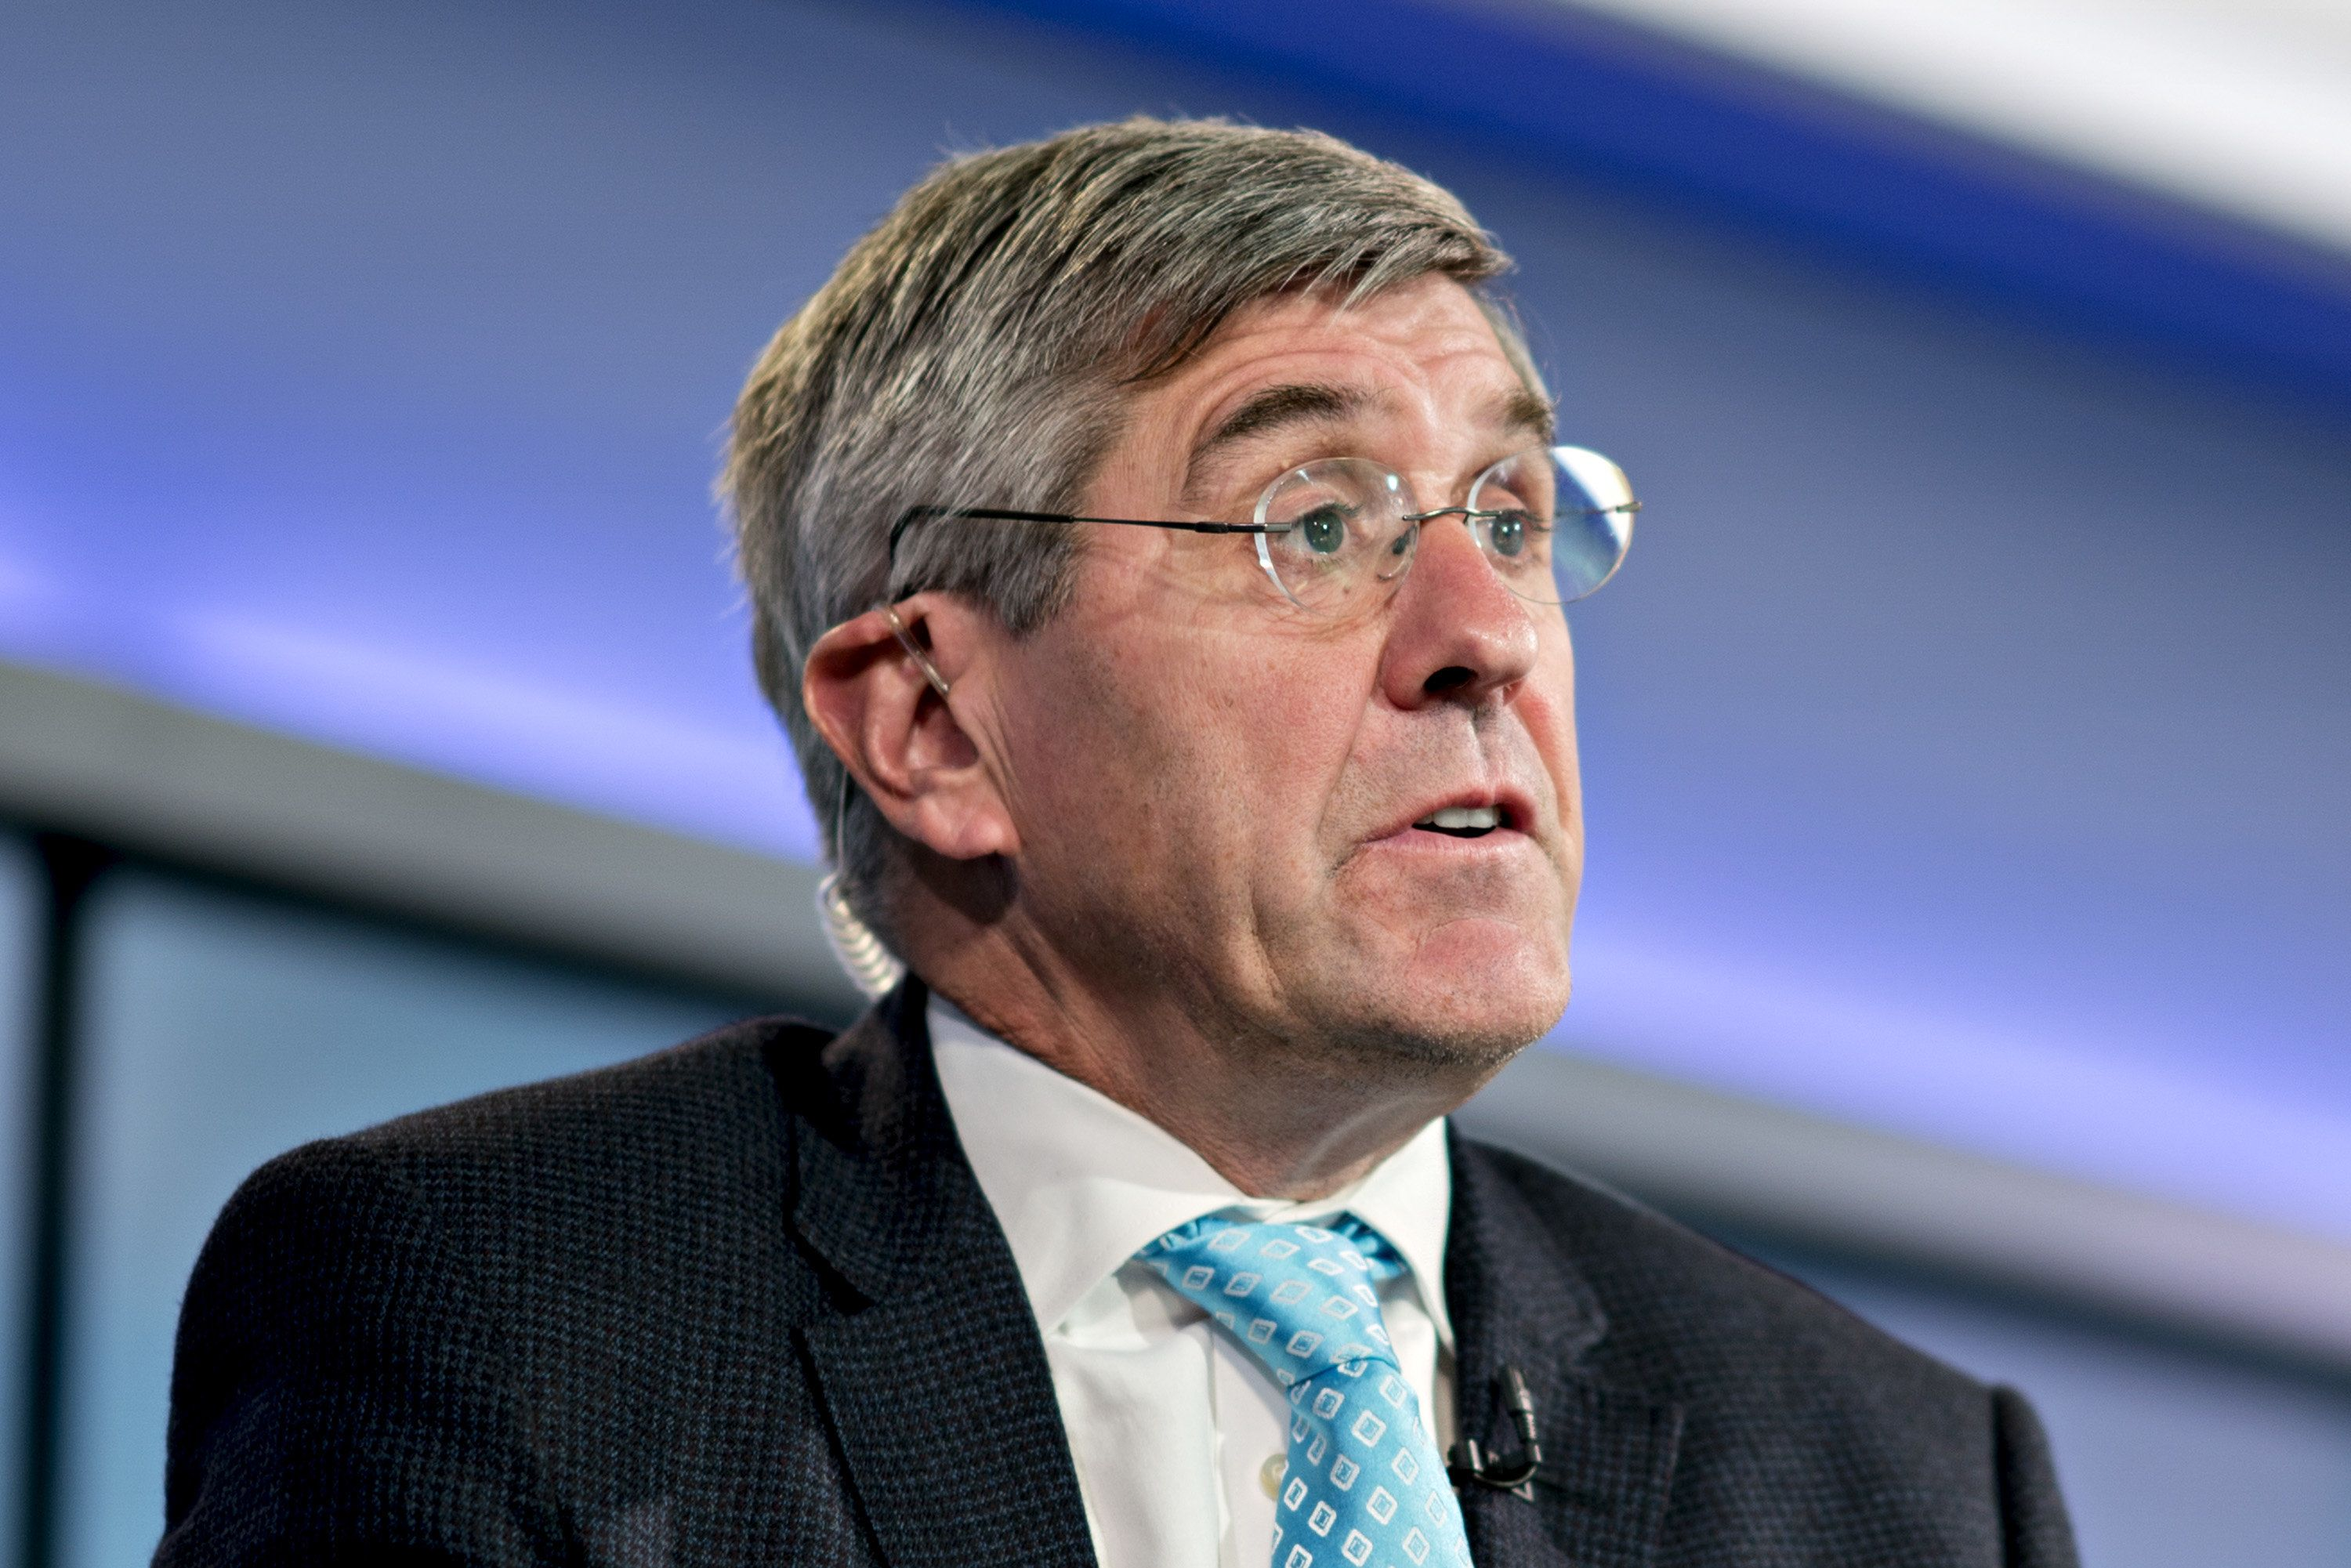 Stephen Moore, visiting fellow at the Heritage Foundation, speaks during a Bloomberg Television interview in Washington, D.C., U.S., on Friday, March 22, 2019. President Donald Trump said he's nominating Moore, a long-time supporter of the president, for a seat on the Federal Reserve Board. Photographer: Andrew Harrer/Bloomberg via Getty Images